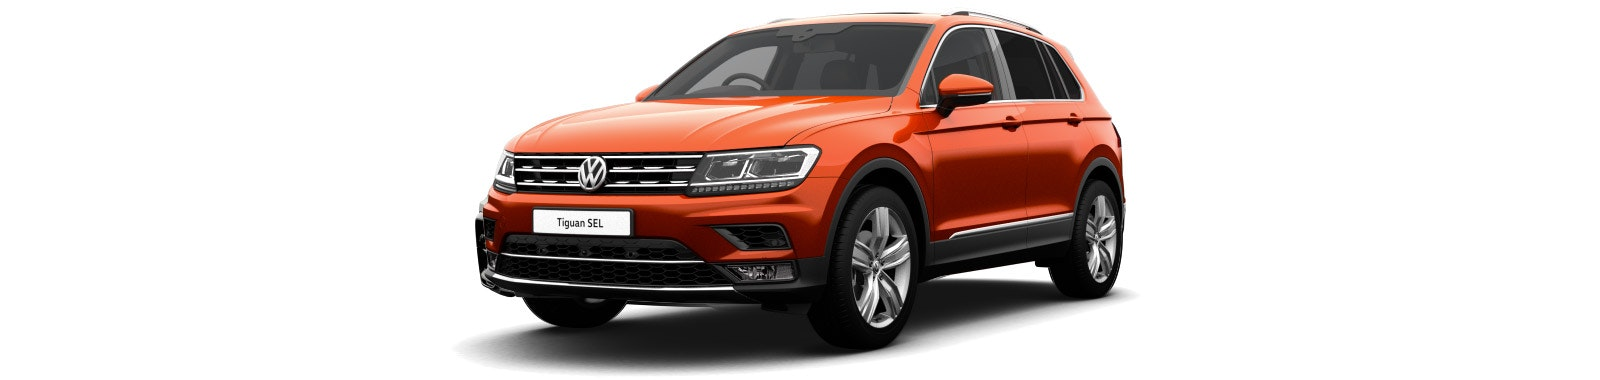 Habanero Orange VW Tiguan